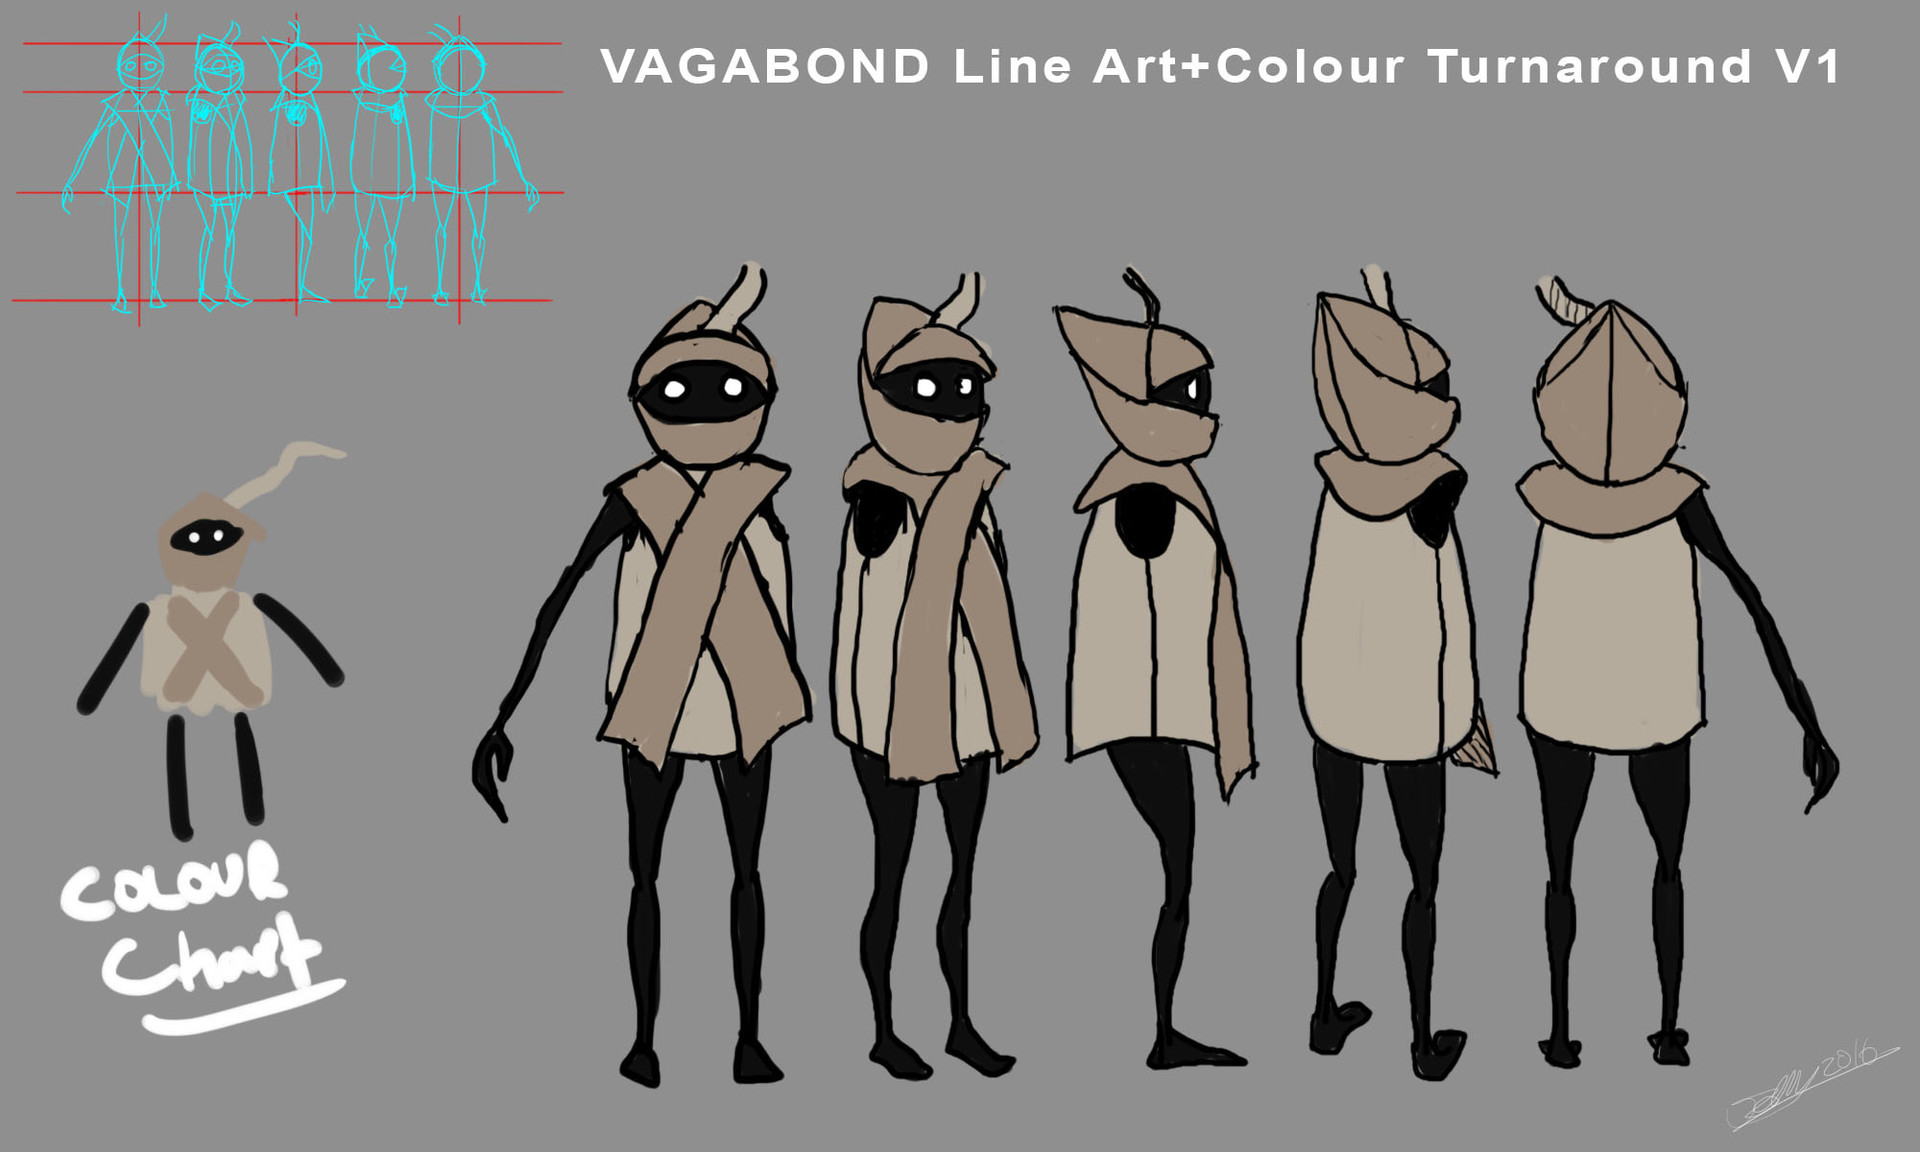 James ball vagabond line art colour turnaround v1